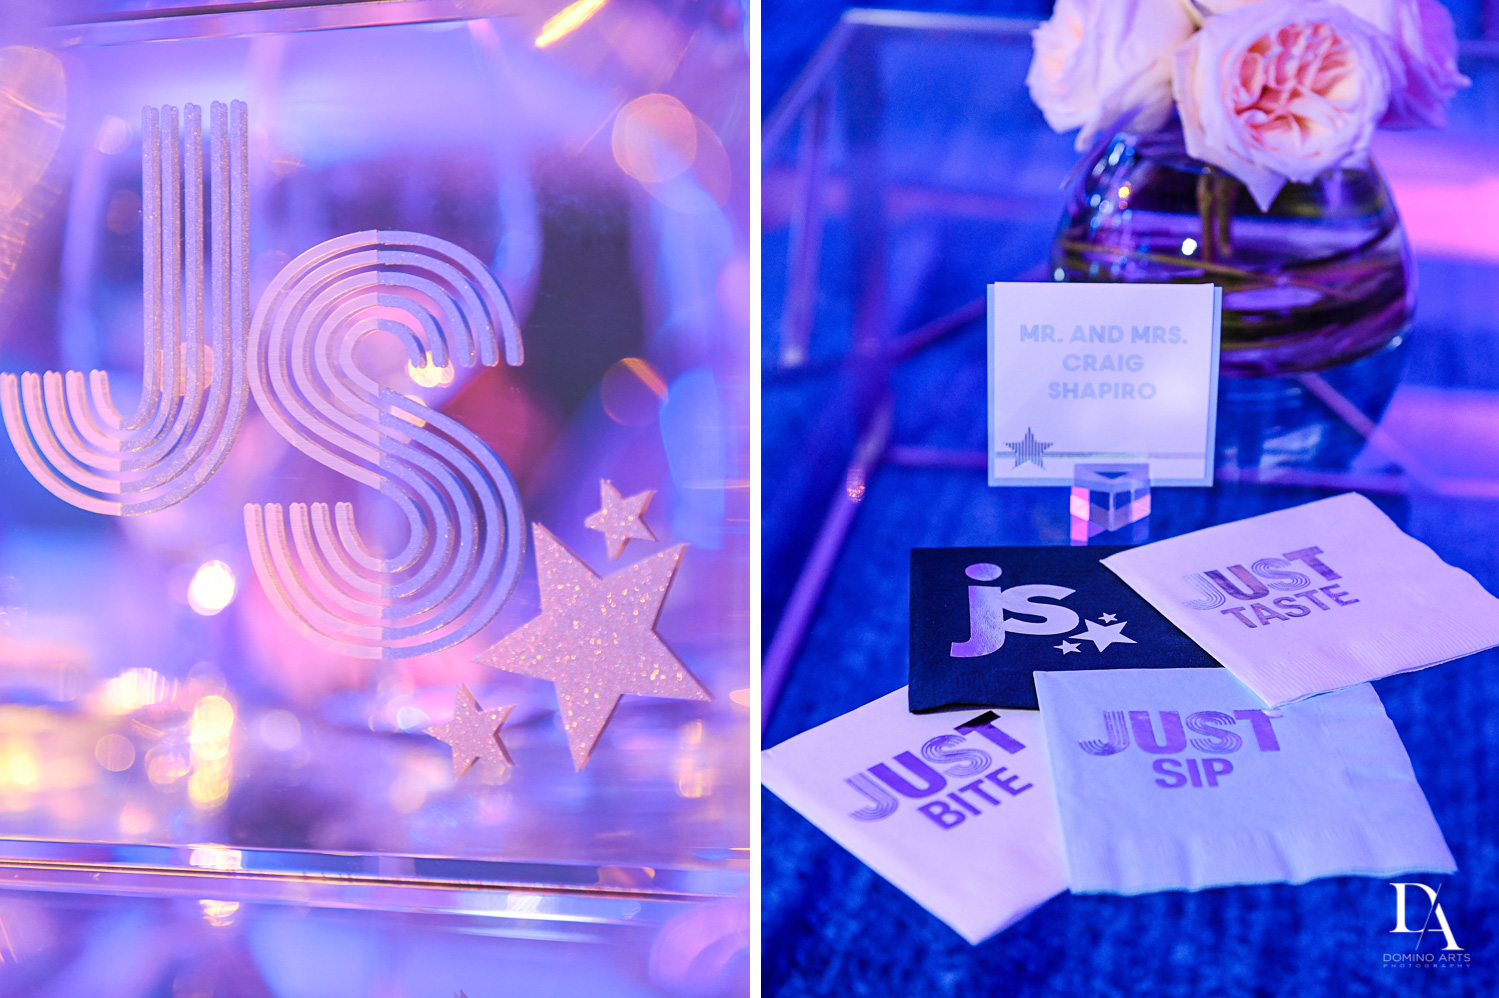 custom invitations for Trendy Decor Bat Mitzvah at St Andrews Country Club by Domino Arts Photography